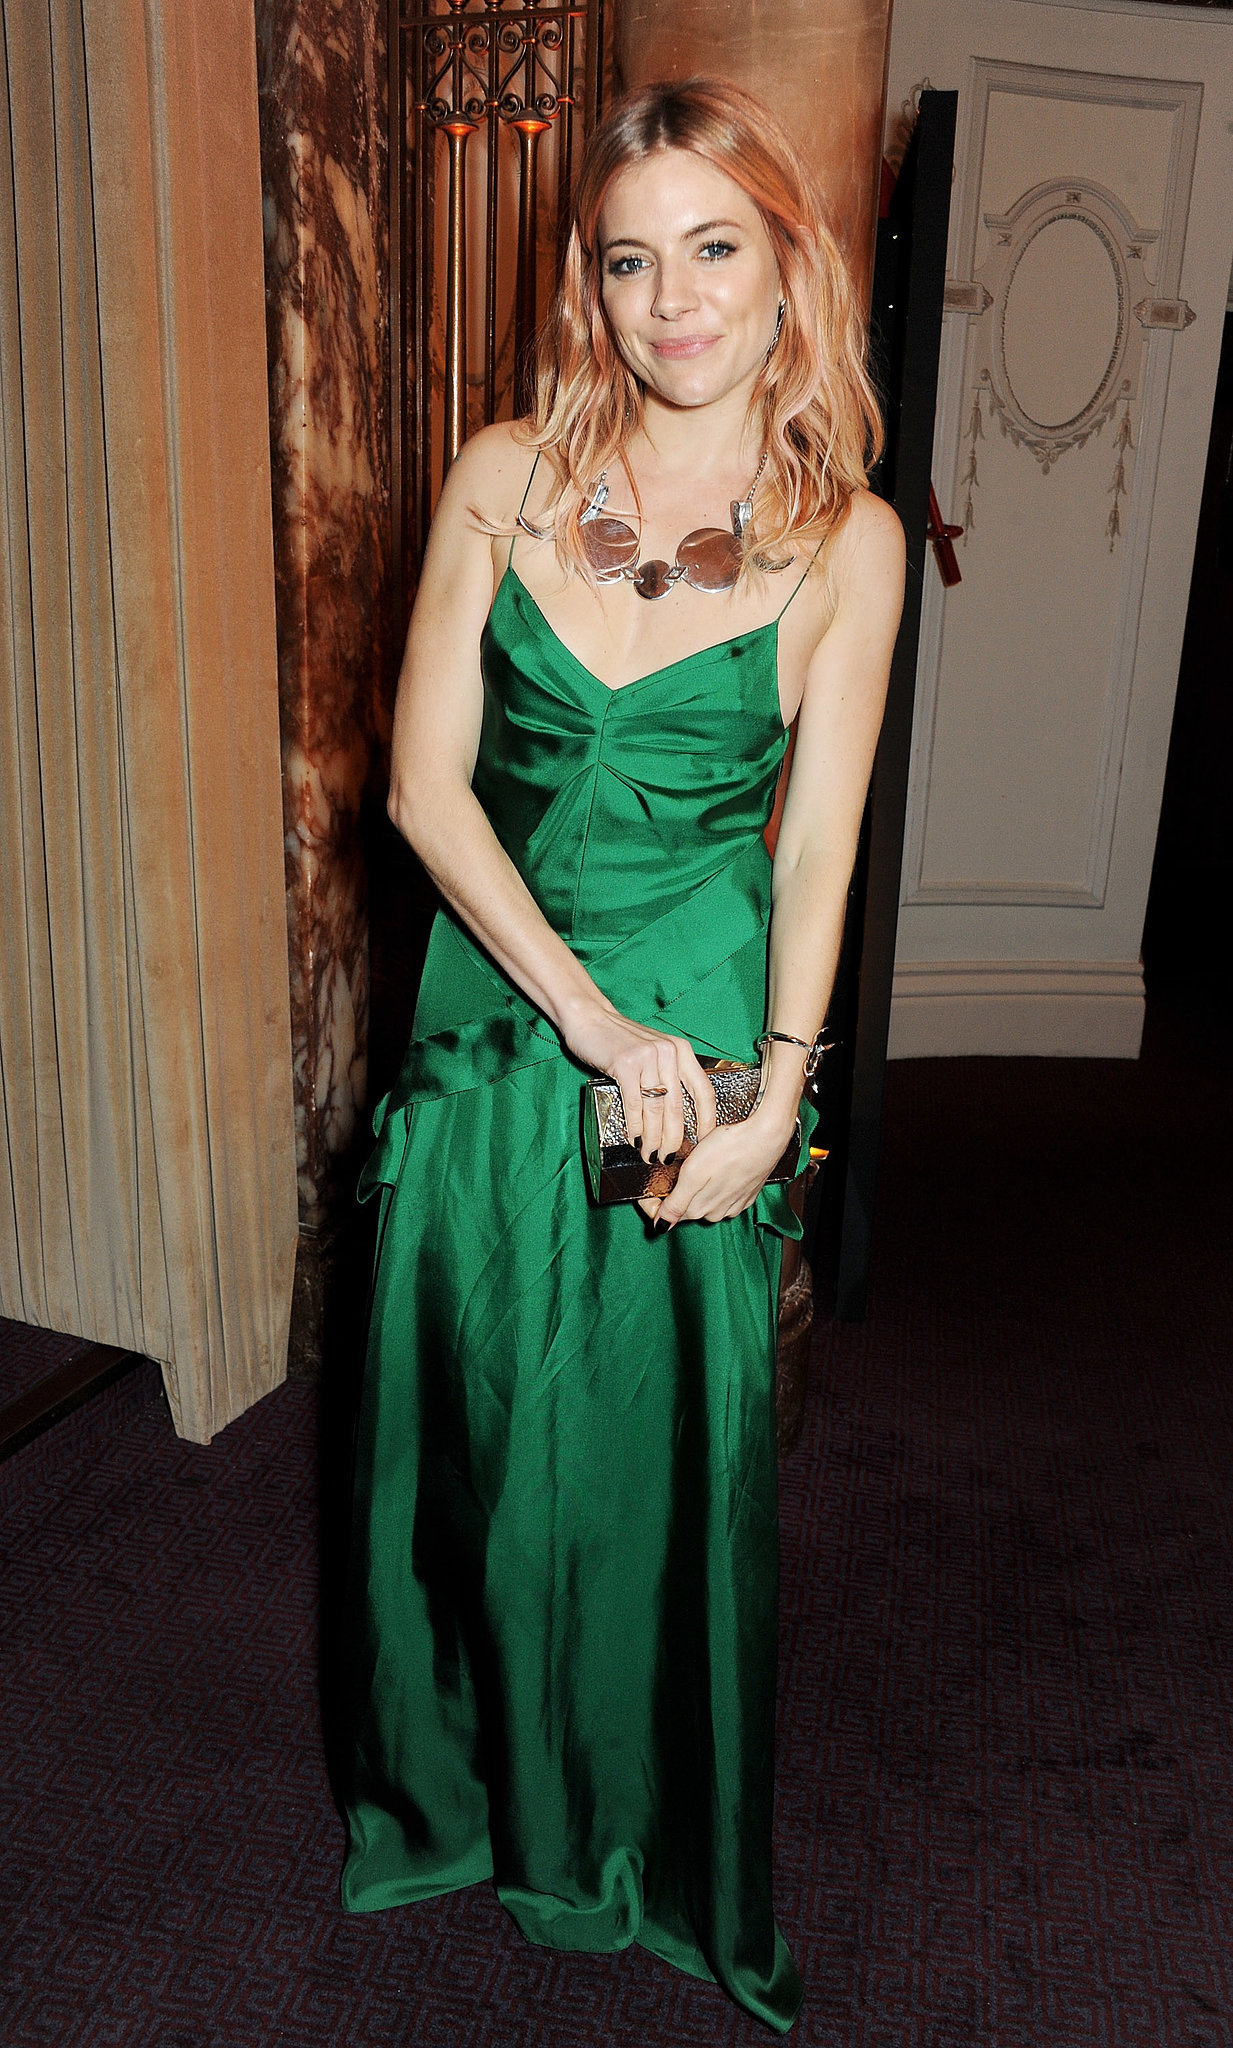 For the 2013 British Fashion Awards, Sienna had us green with envy choosing a silky Burberry gown and statement plated necklace.